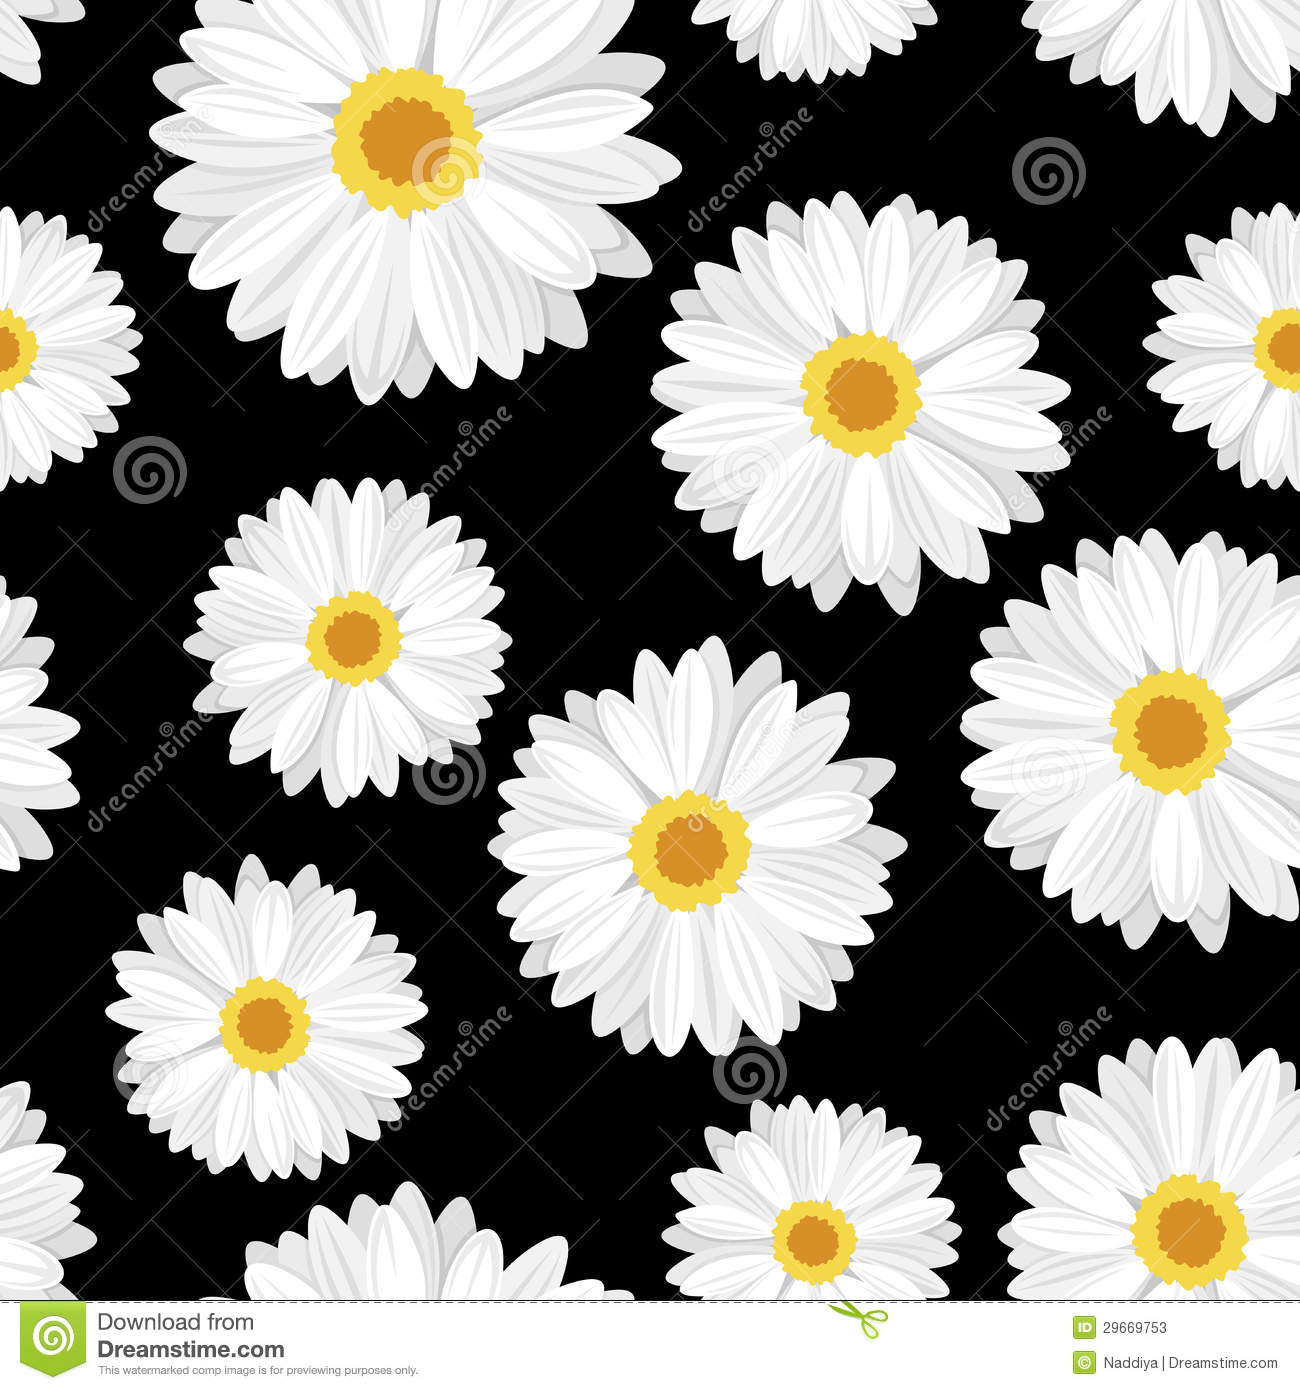 Vector Seamless Background With Daisy Flowers Stock Vector